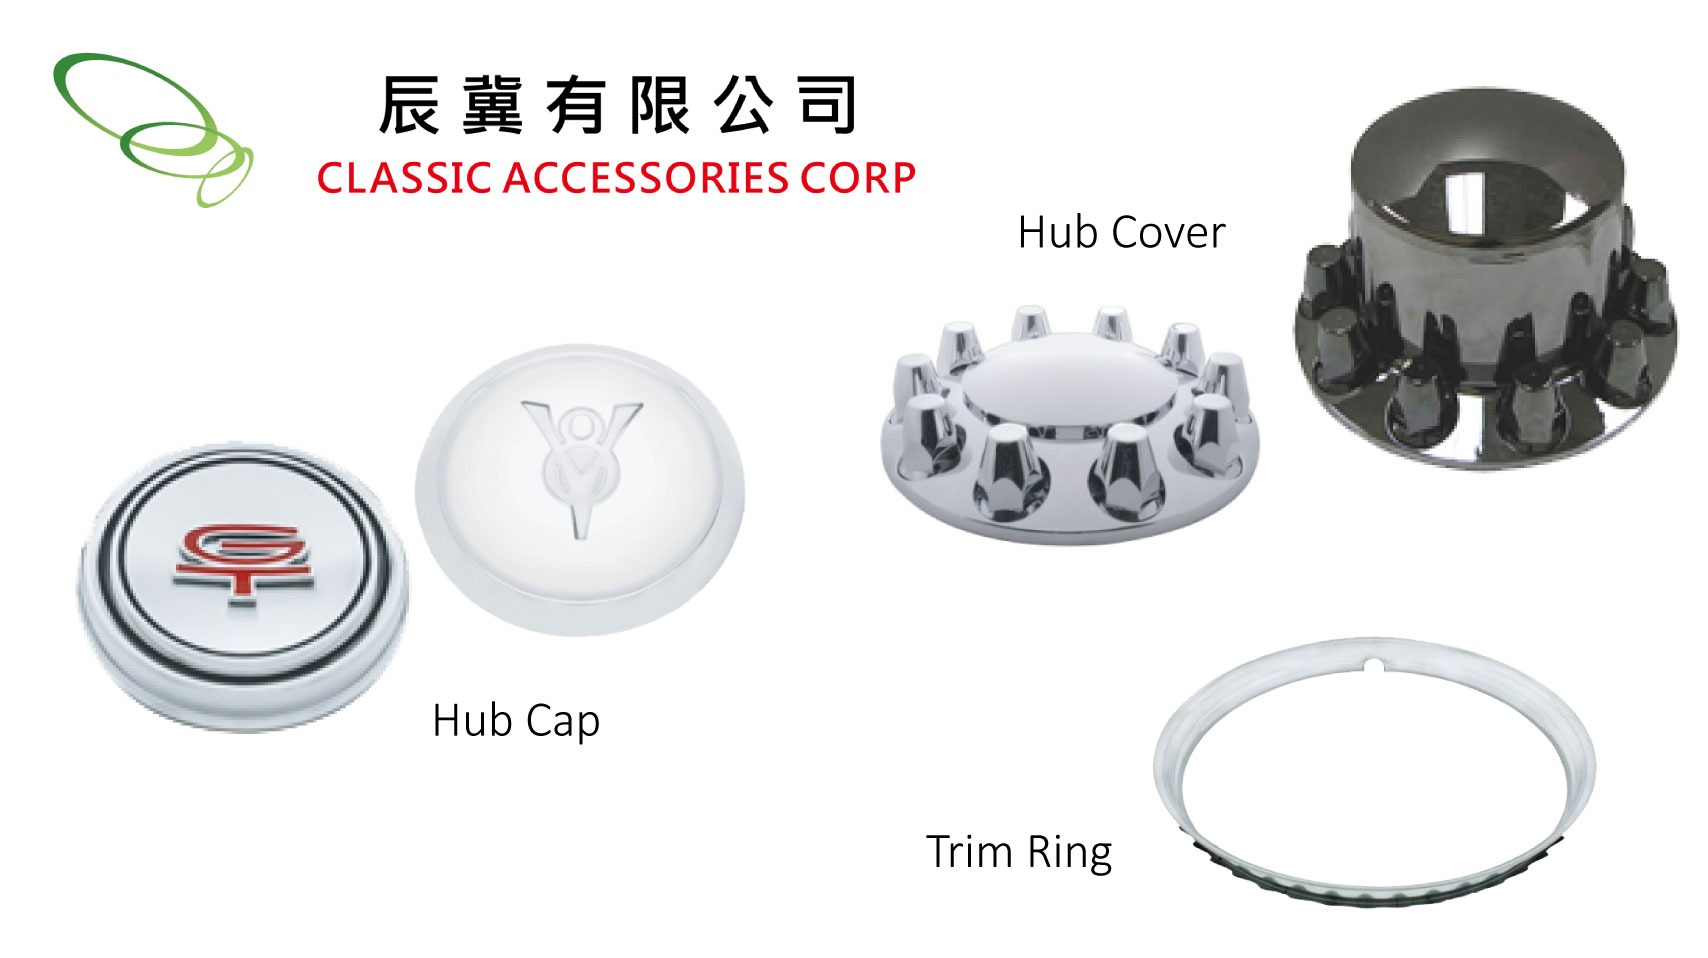 Hub Cap, Hub Cover, Trim Ring for Wheels / Tires Parts made by CLASSIC ACCESSORIES CORP. 辰冀有限公司 – MatchSupplier.com